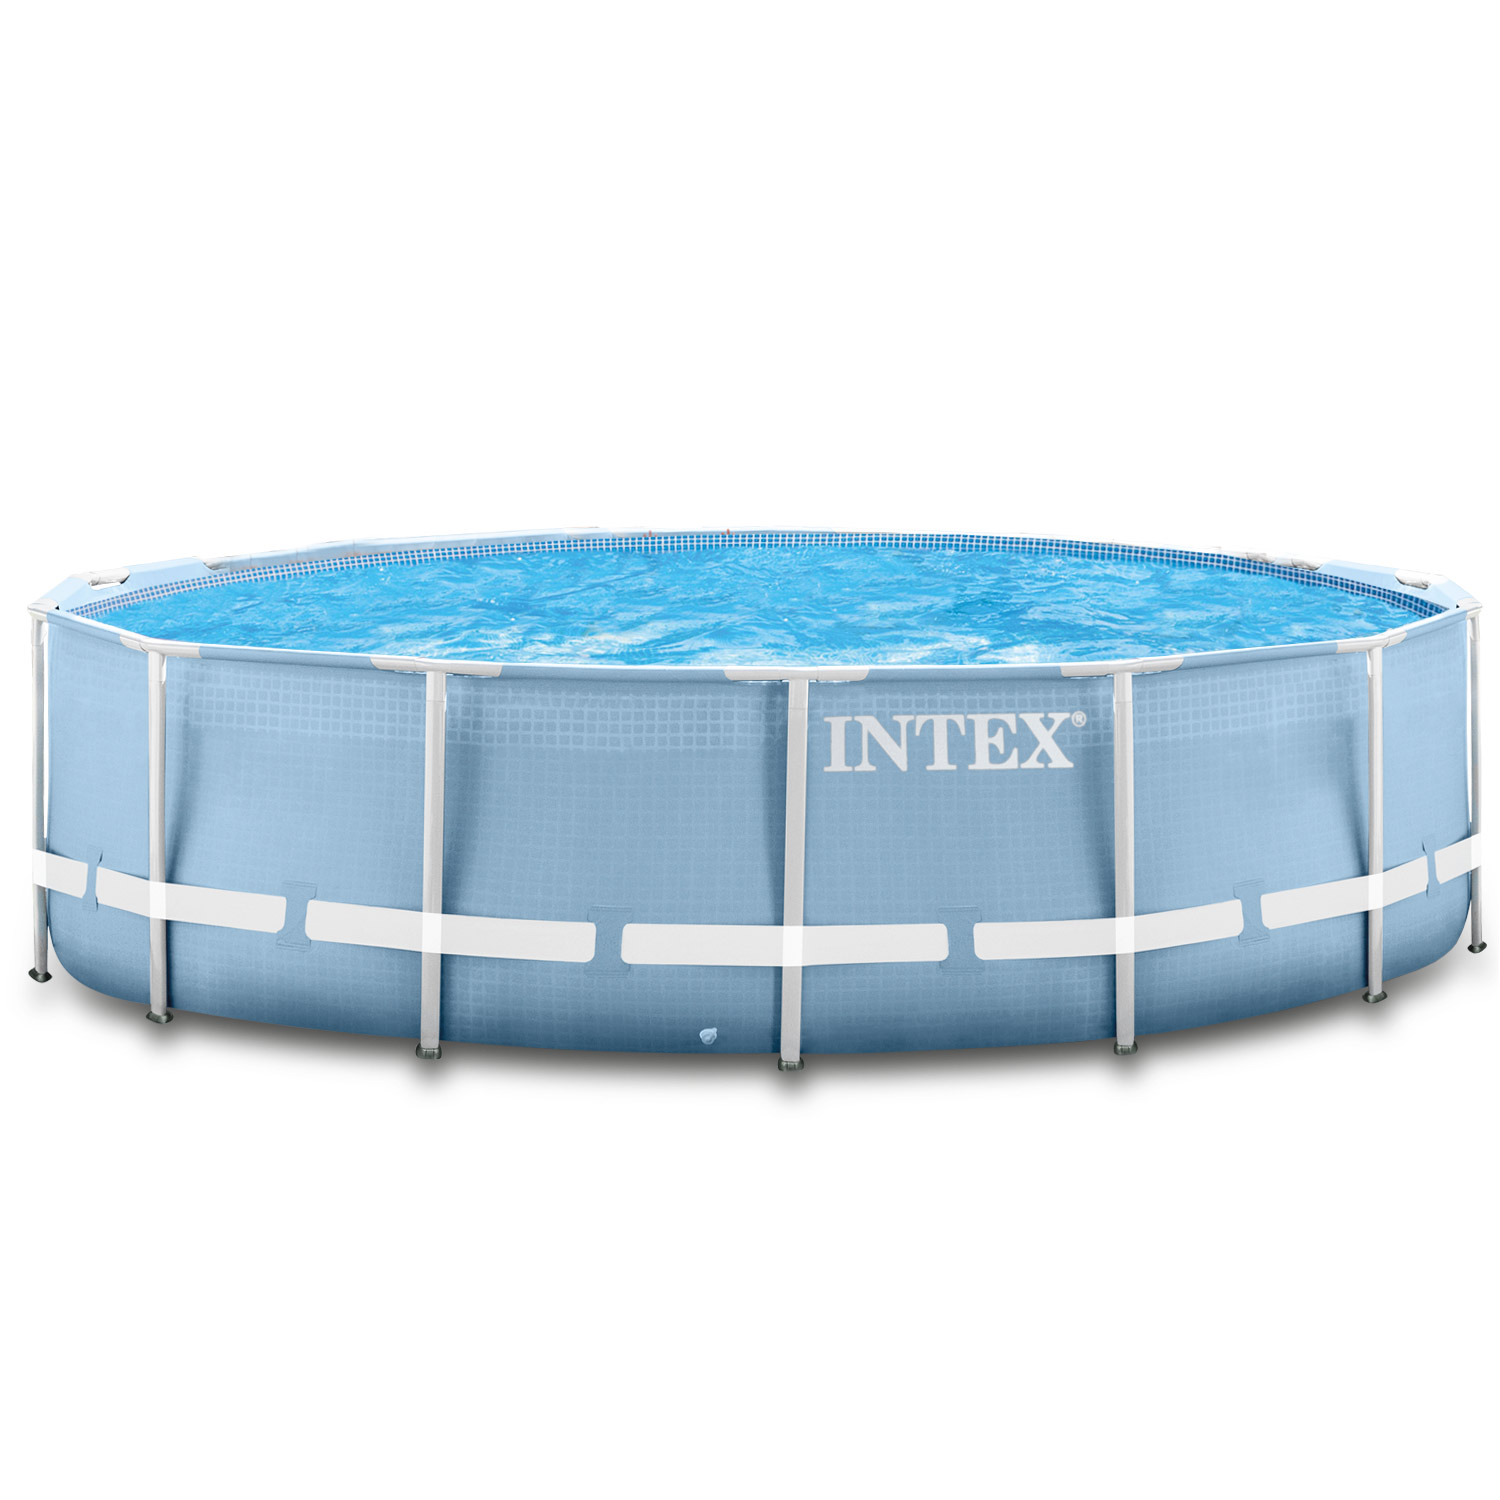 Intex Pool Ohne Filteranlage Intex Swimming Pool Frame 457x122 Cm Ohne Zubehör